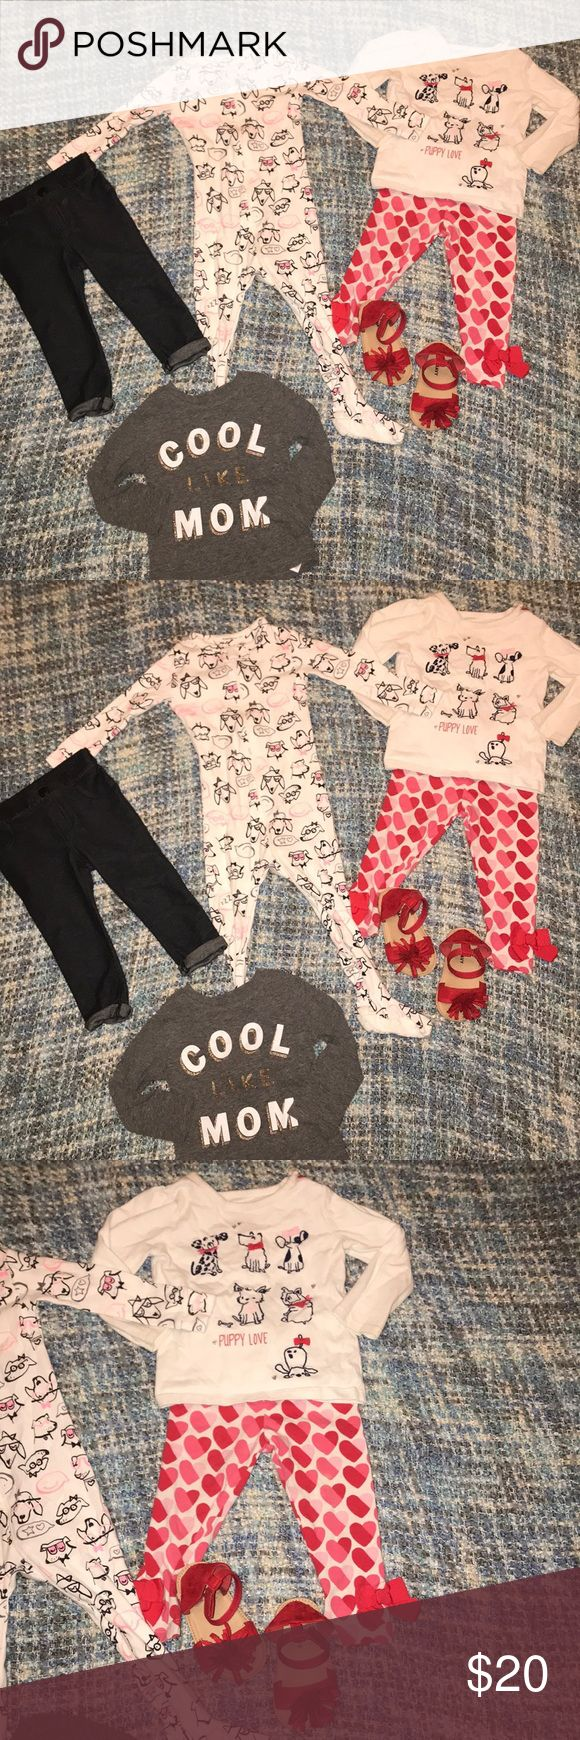 Old navy baby gap Gymboree lot red gray white jean All items are 12-18 months red shoes old navy - Gymboree puppy love shirt with heart leggings - baby gap dog sleeper - old navy jean leggings - old navy cool like Mom shirt GAP Matching Sets